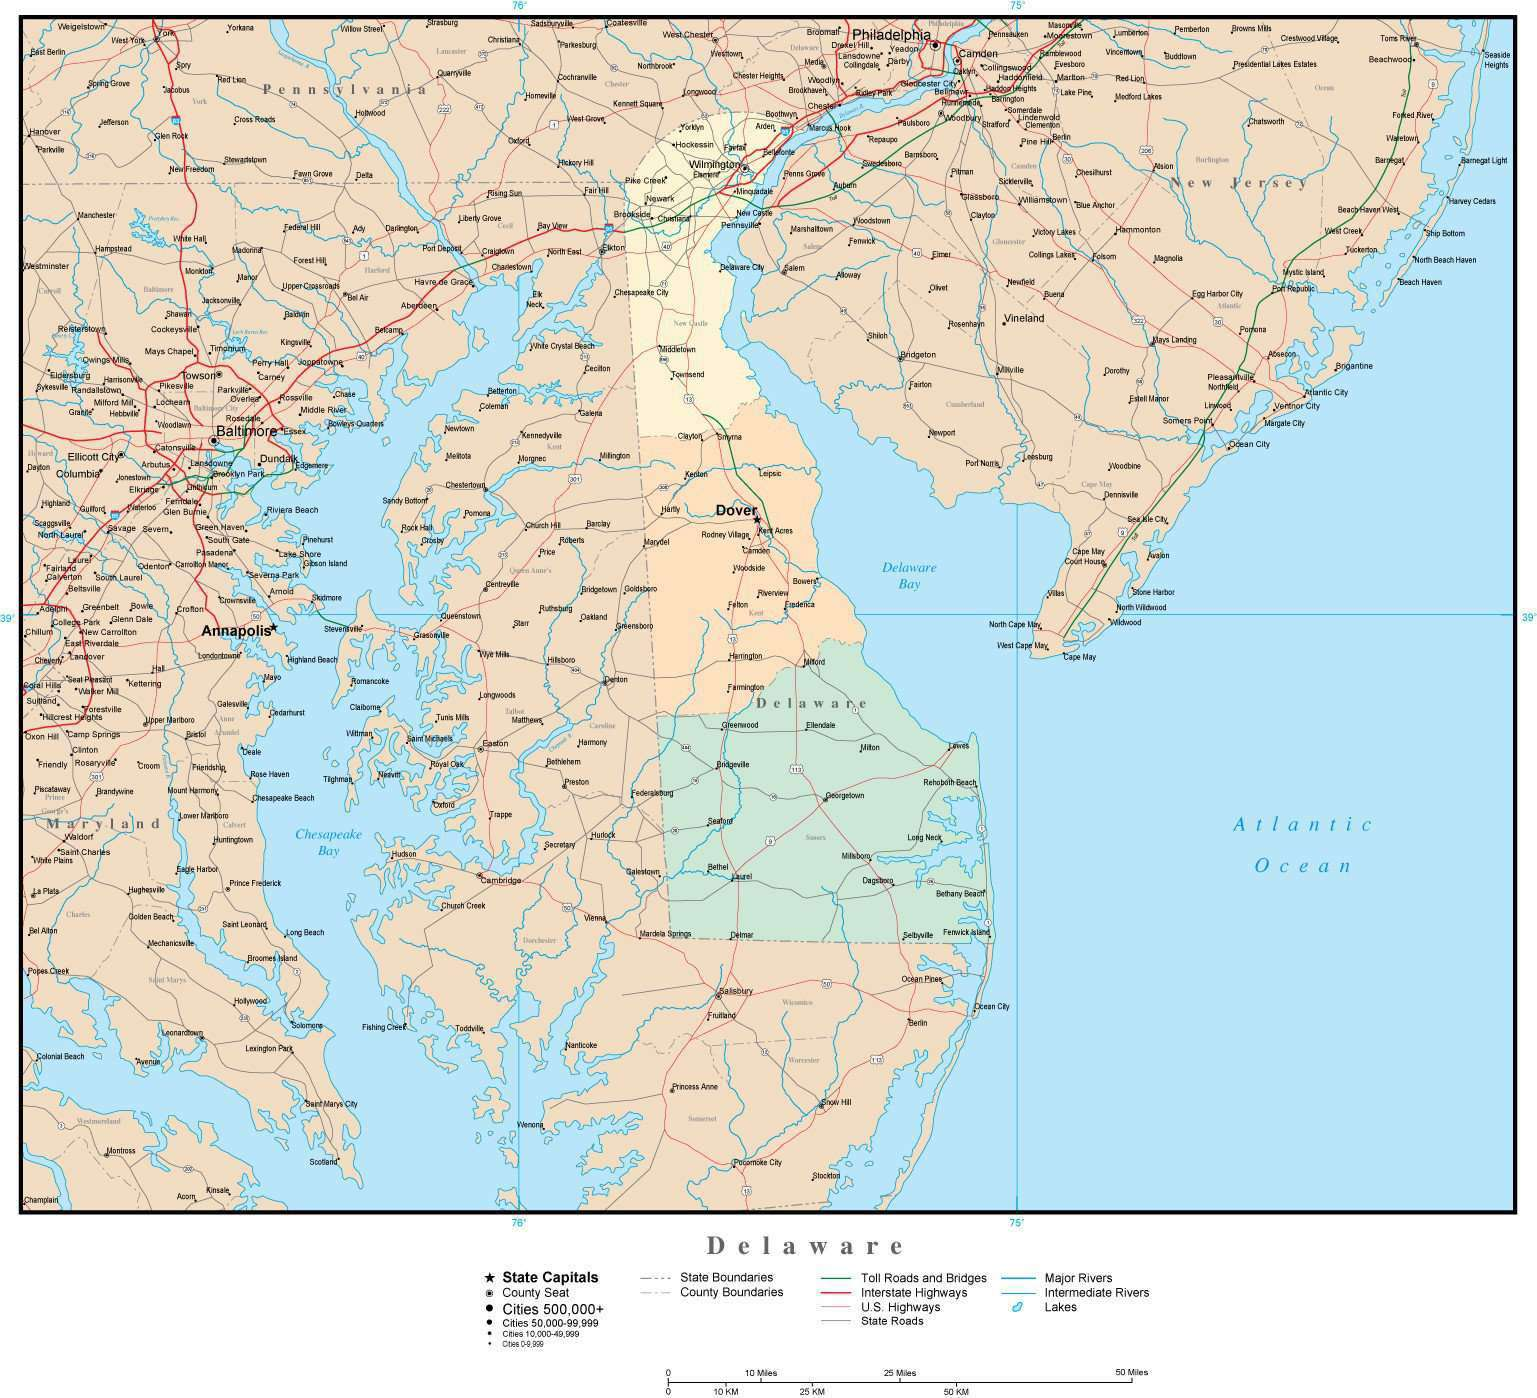 Us Area Code Map My Blog United States Of America Area Codes USA - Usa area code map